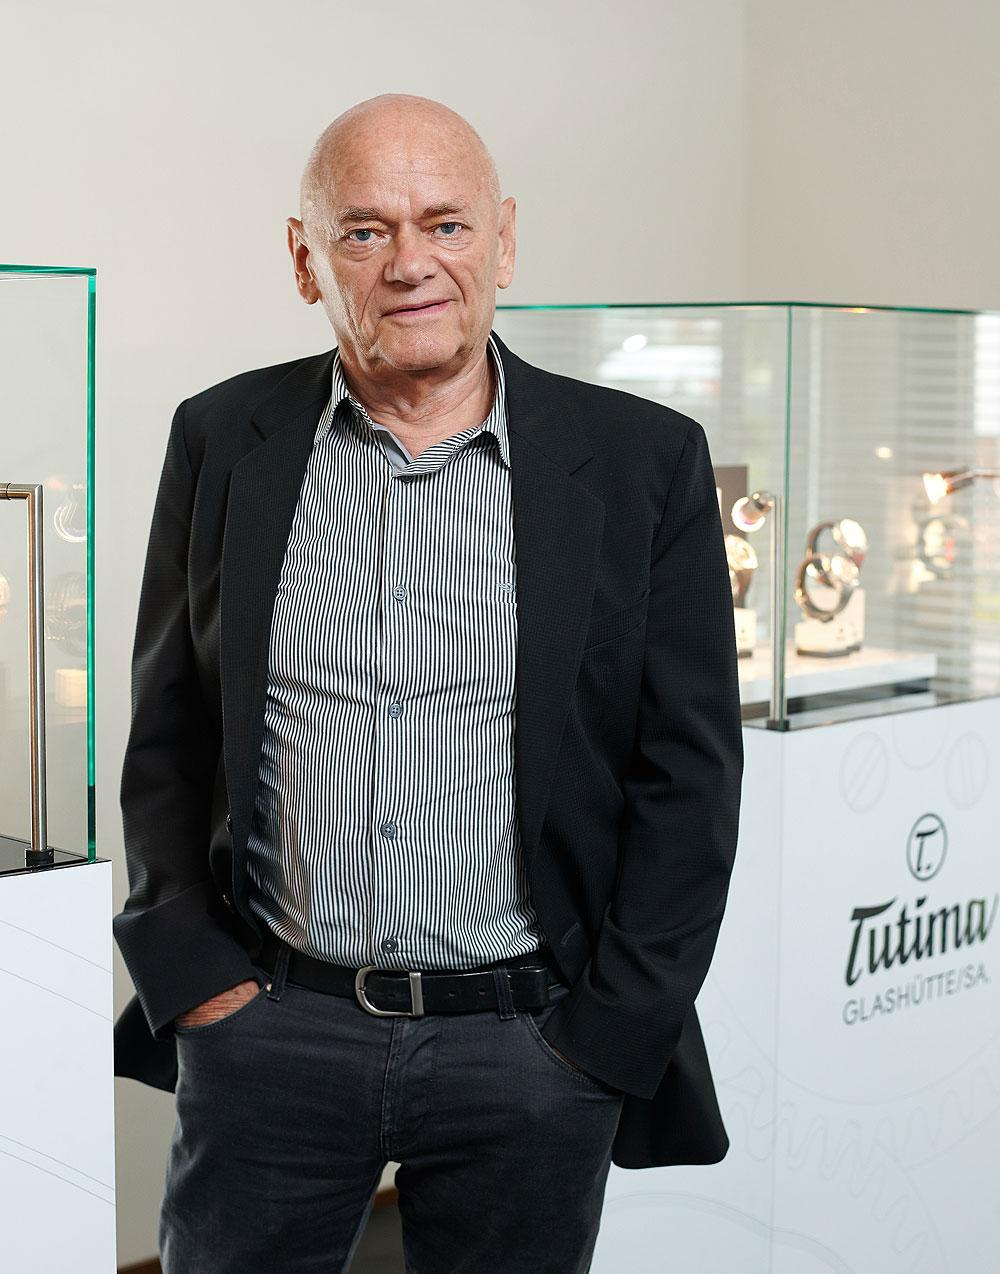 Dieter Delecate of Tutima watches